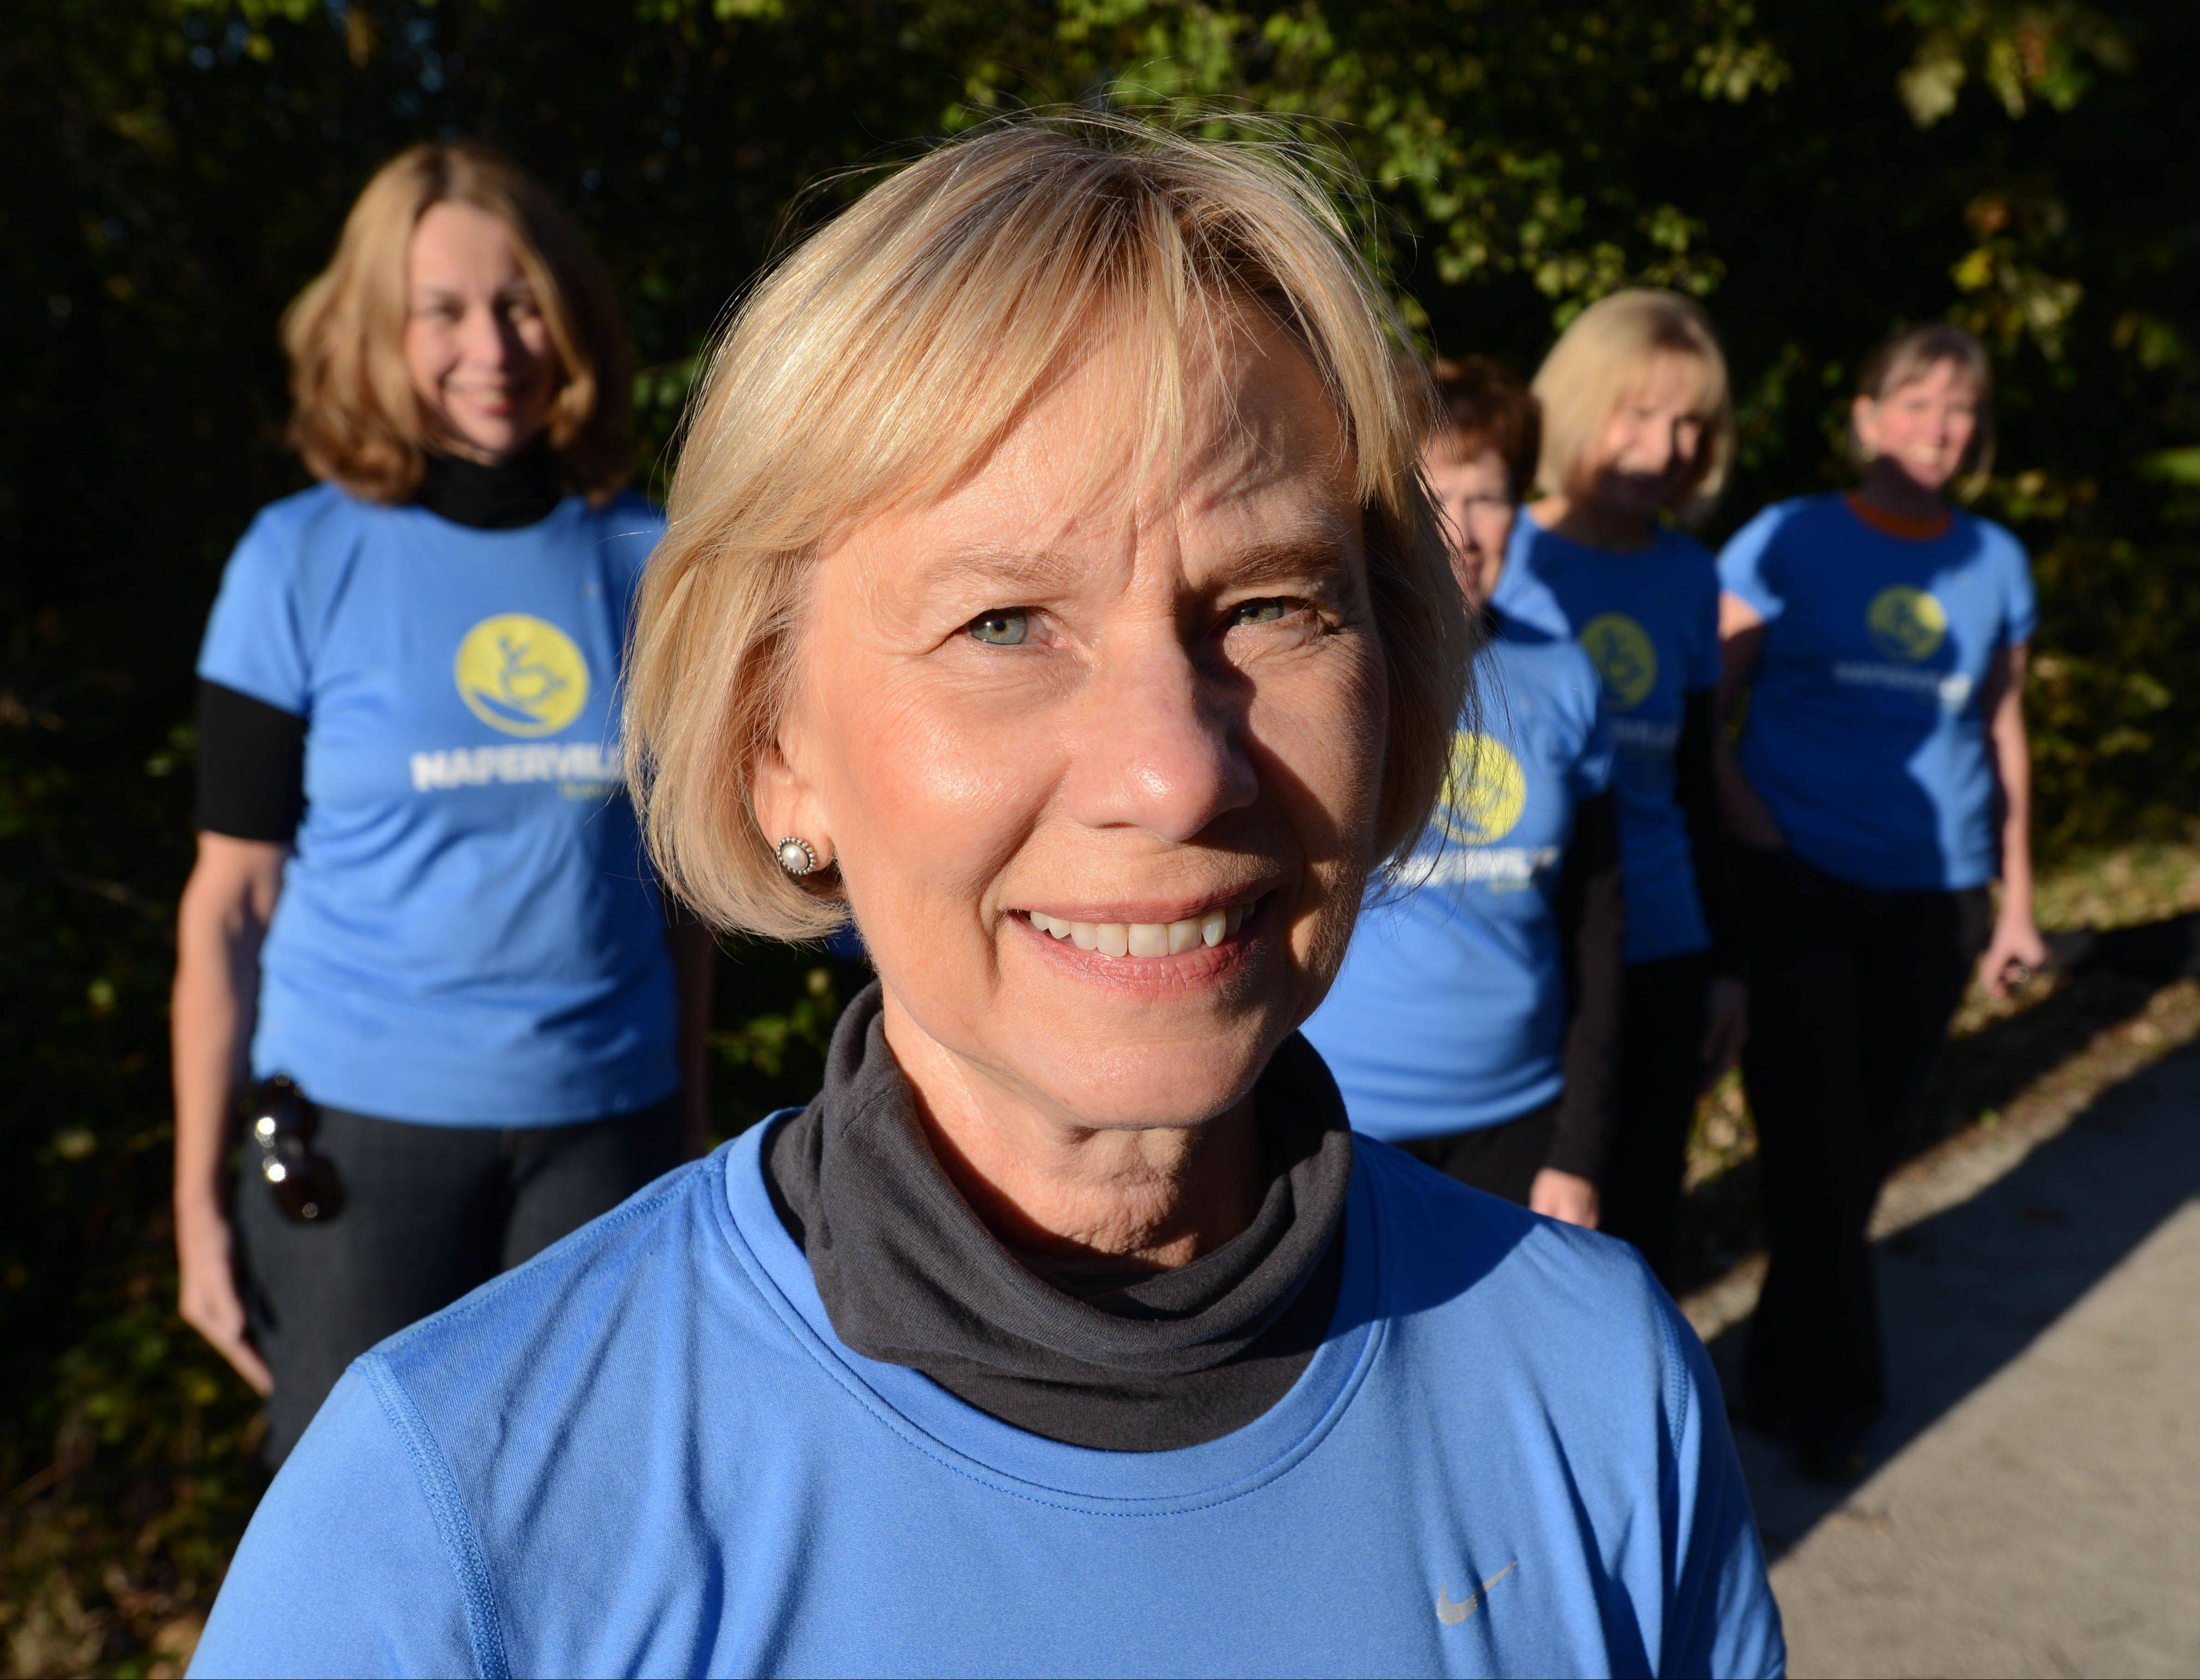 Ginni Kent of Glen Ellyn and her teammates are running the Naperville Half Marathon to support Spinal Cord Injury Sucks, a charity her son, Geoff, started.